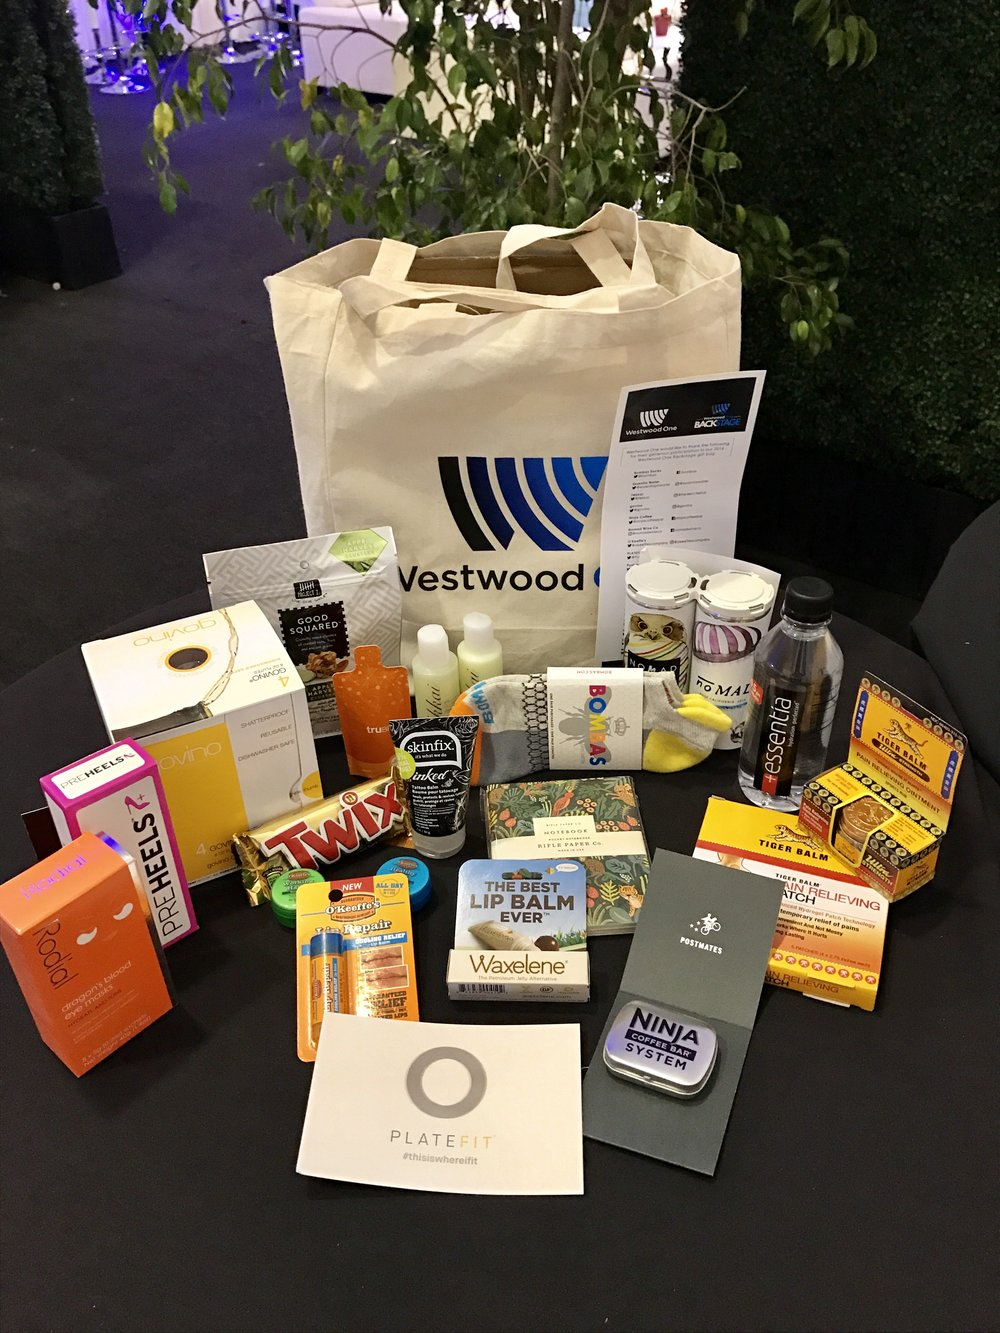 The biggest names in music from the American Music Awards (nominees, presenters and performers) took home these gift bags with them backstage- November 2016